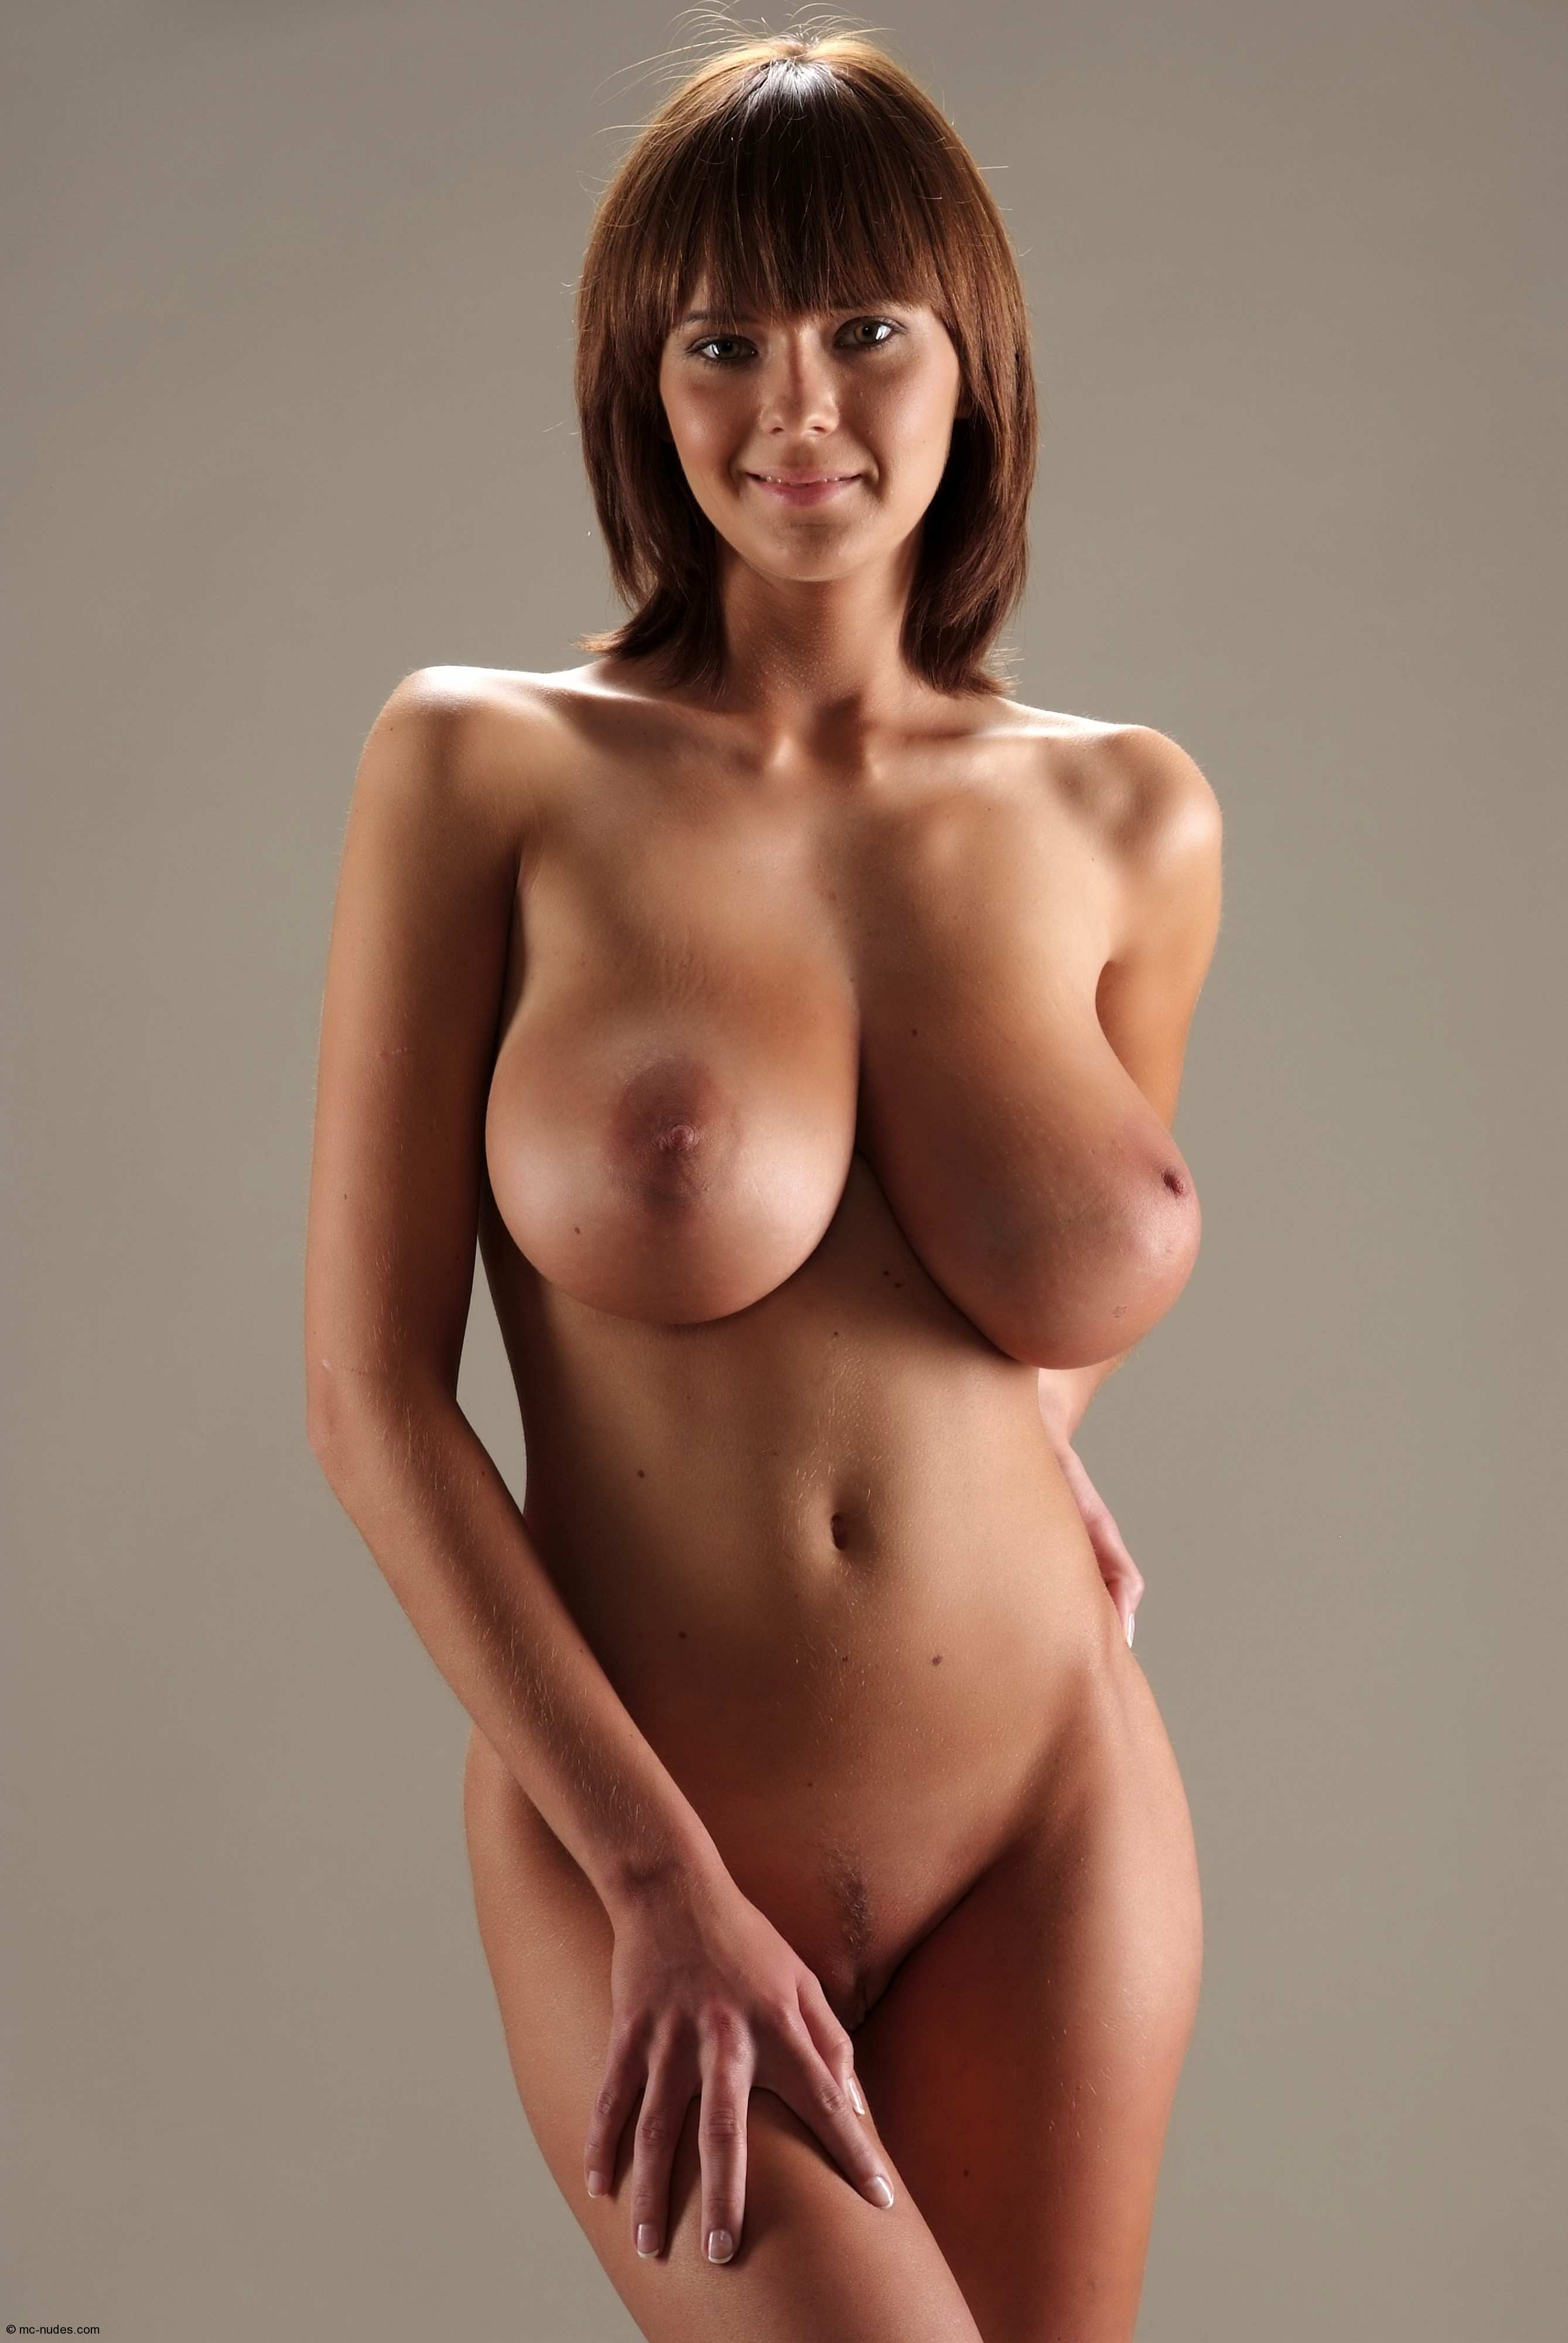 Best Naked Breast Pics